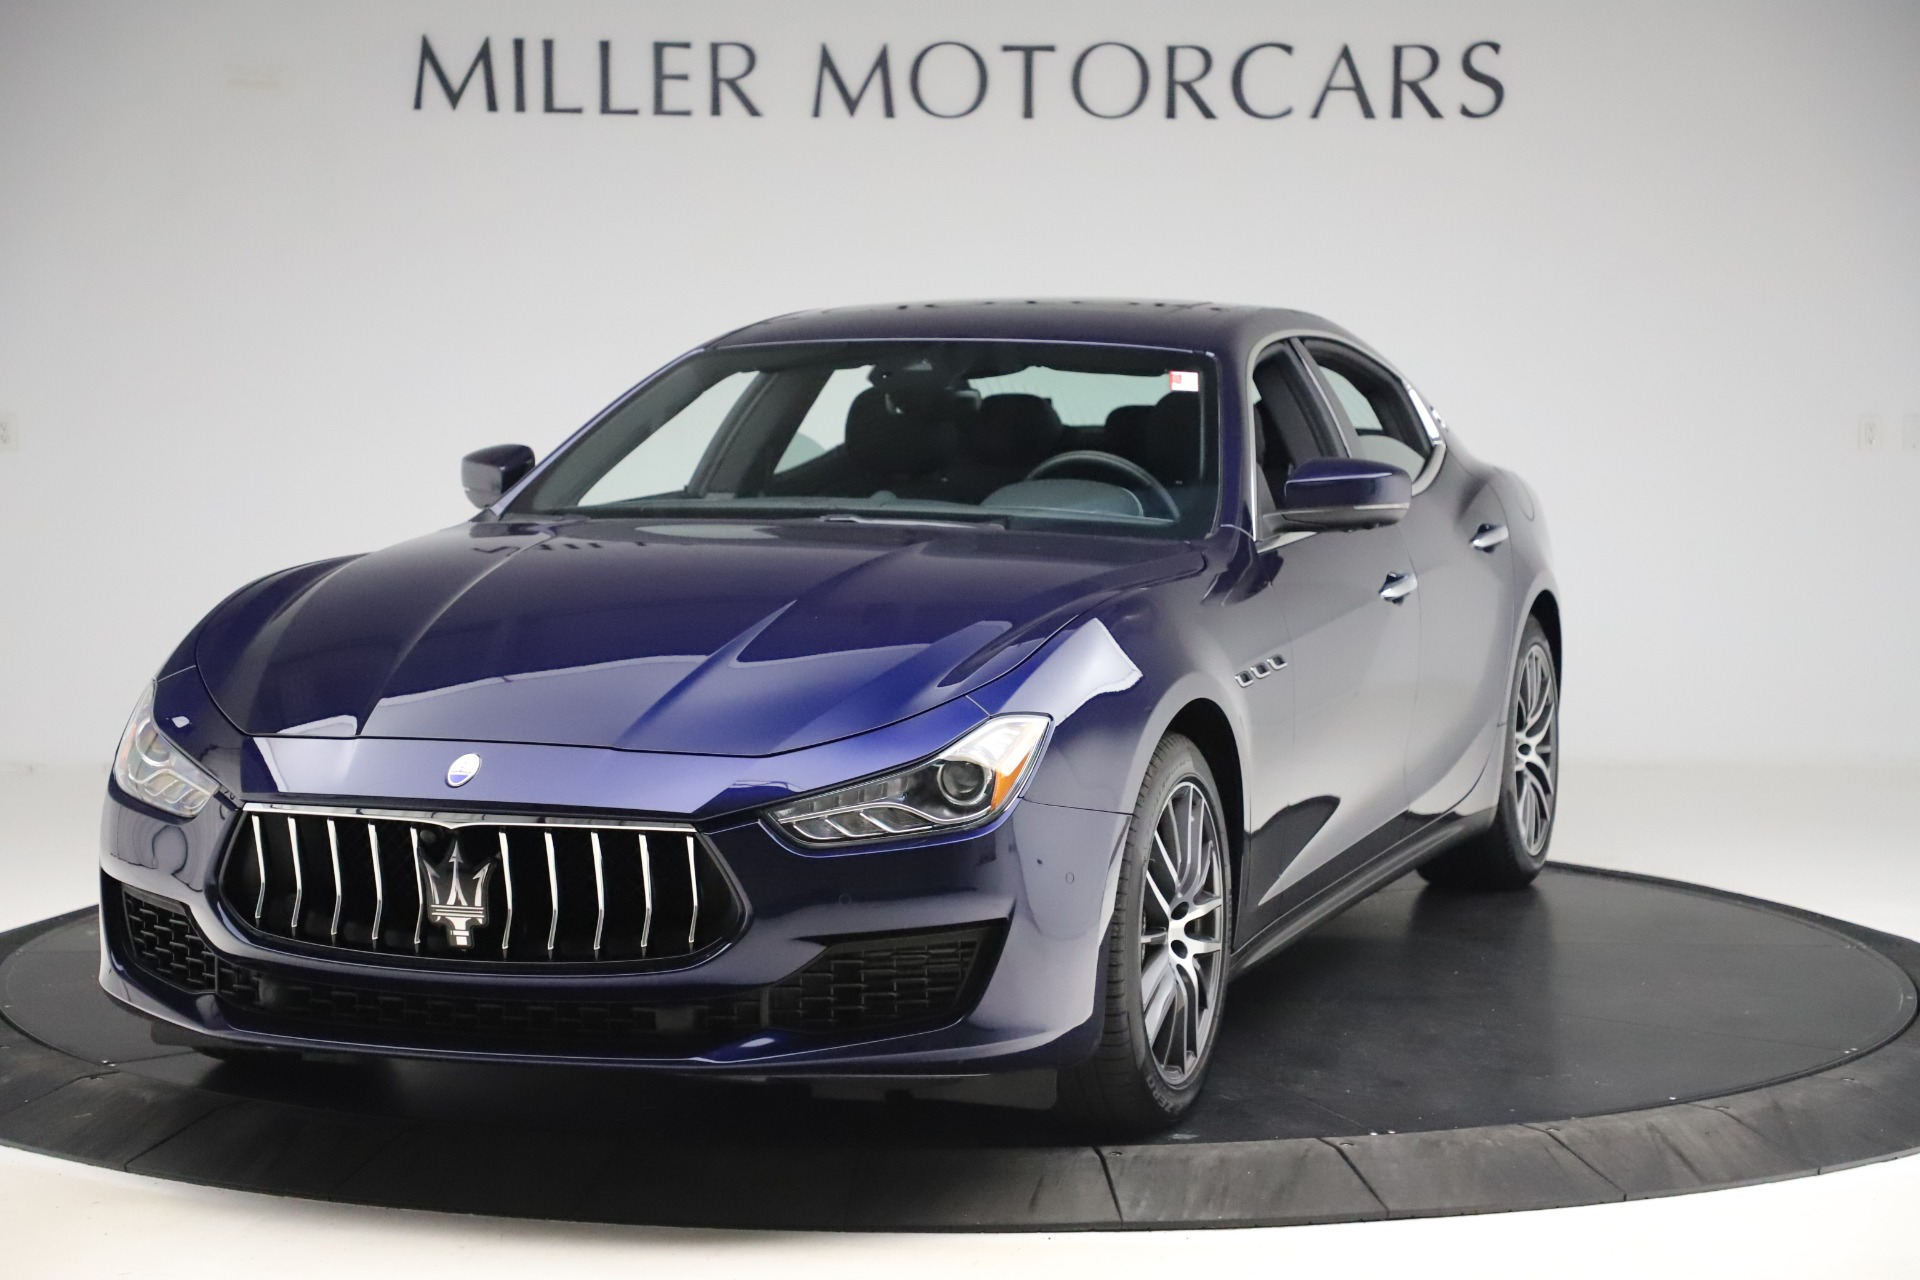 New 2019 Maserati Ghibli S Q4 for sale $90,765 at Bentley Greenwich in Greenwich CT 06830 1